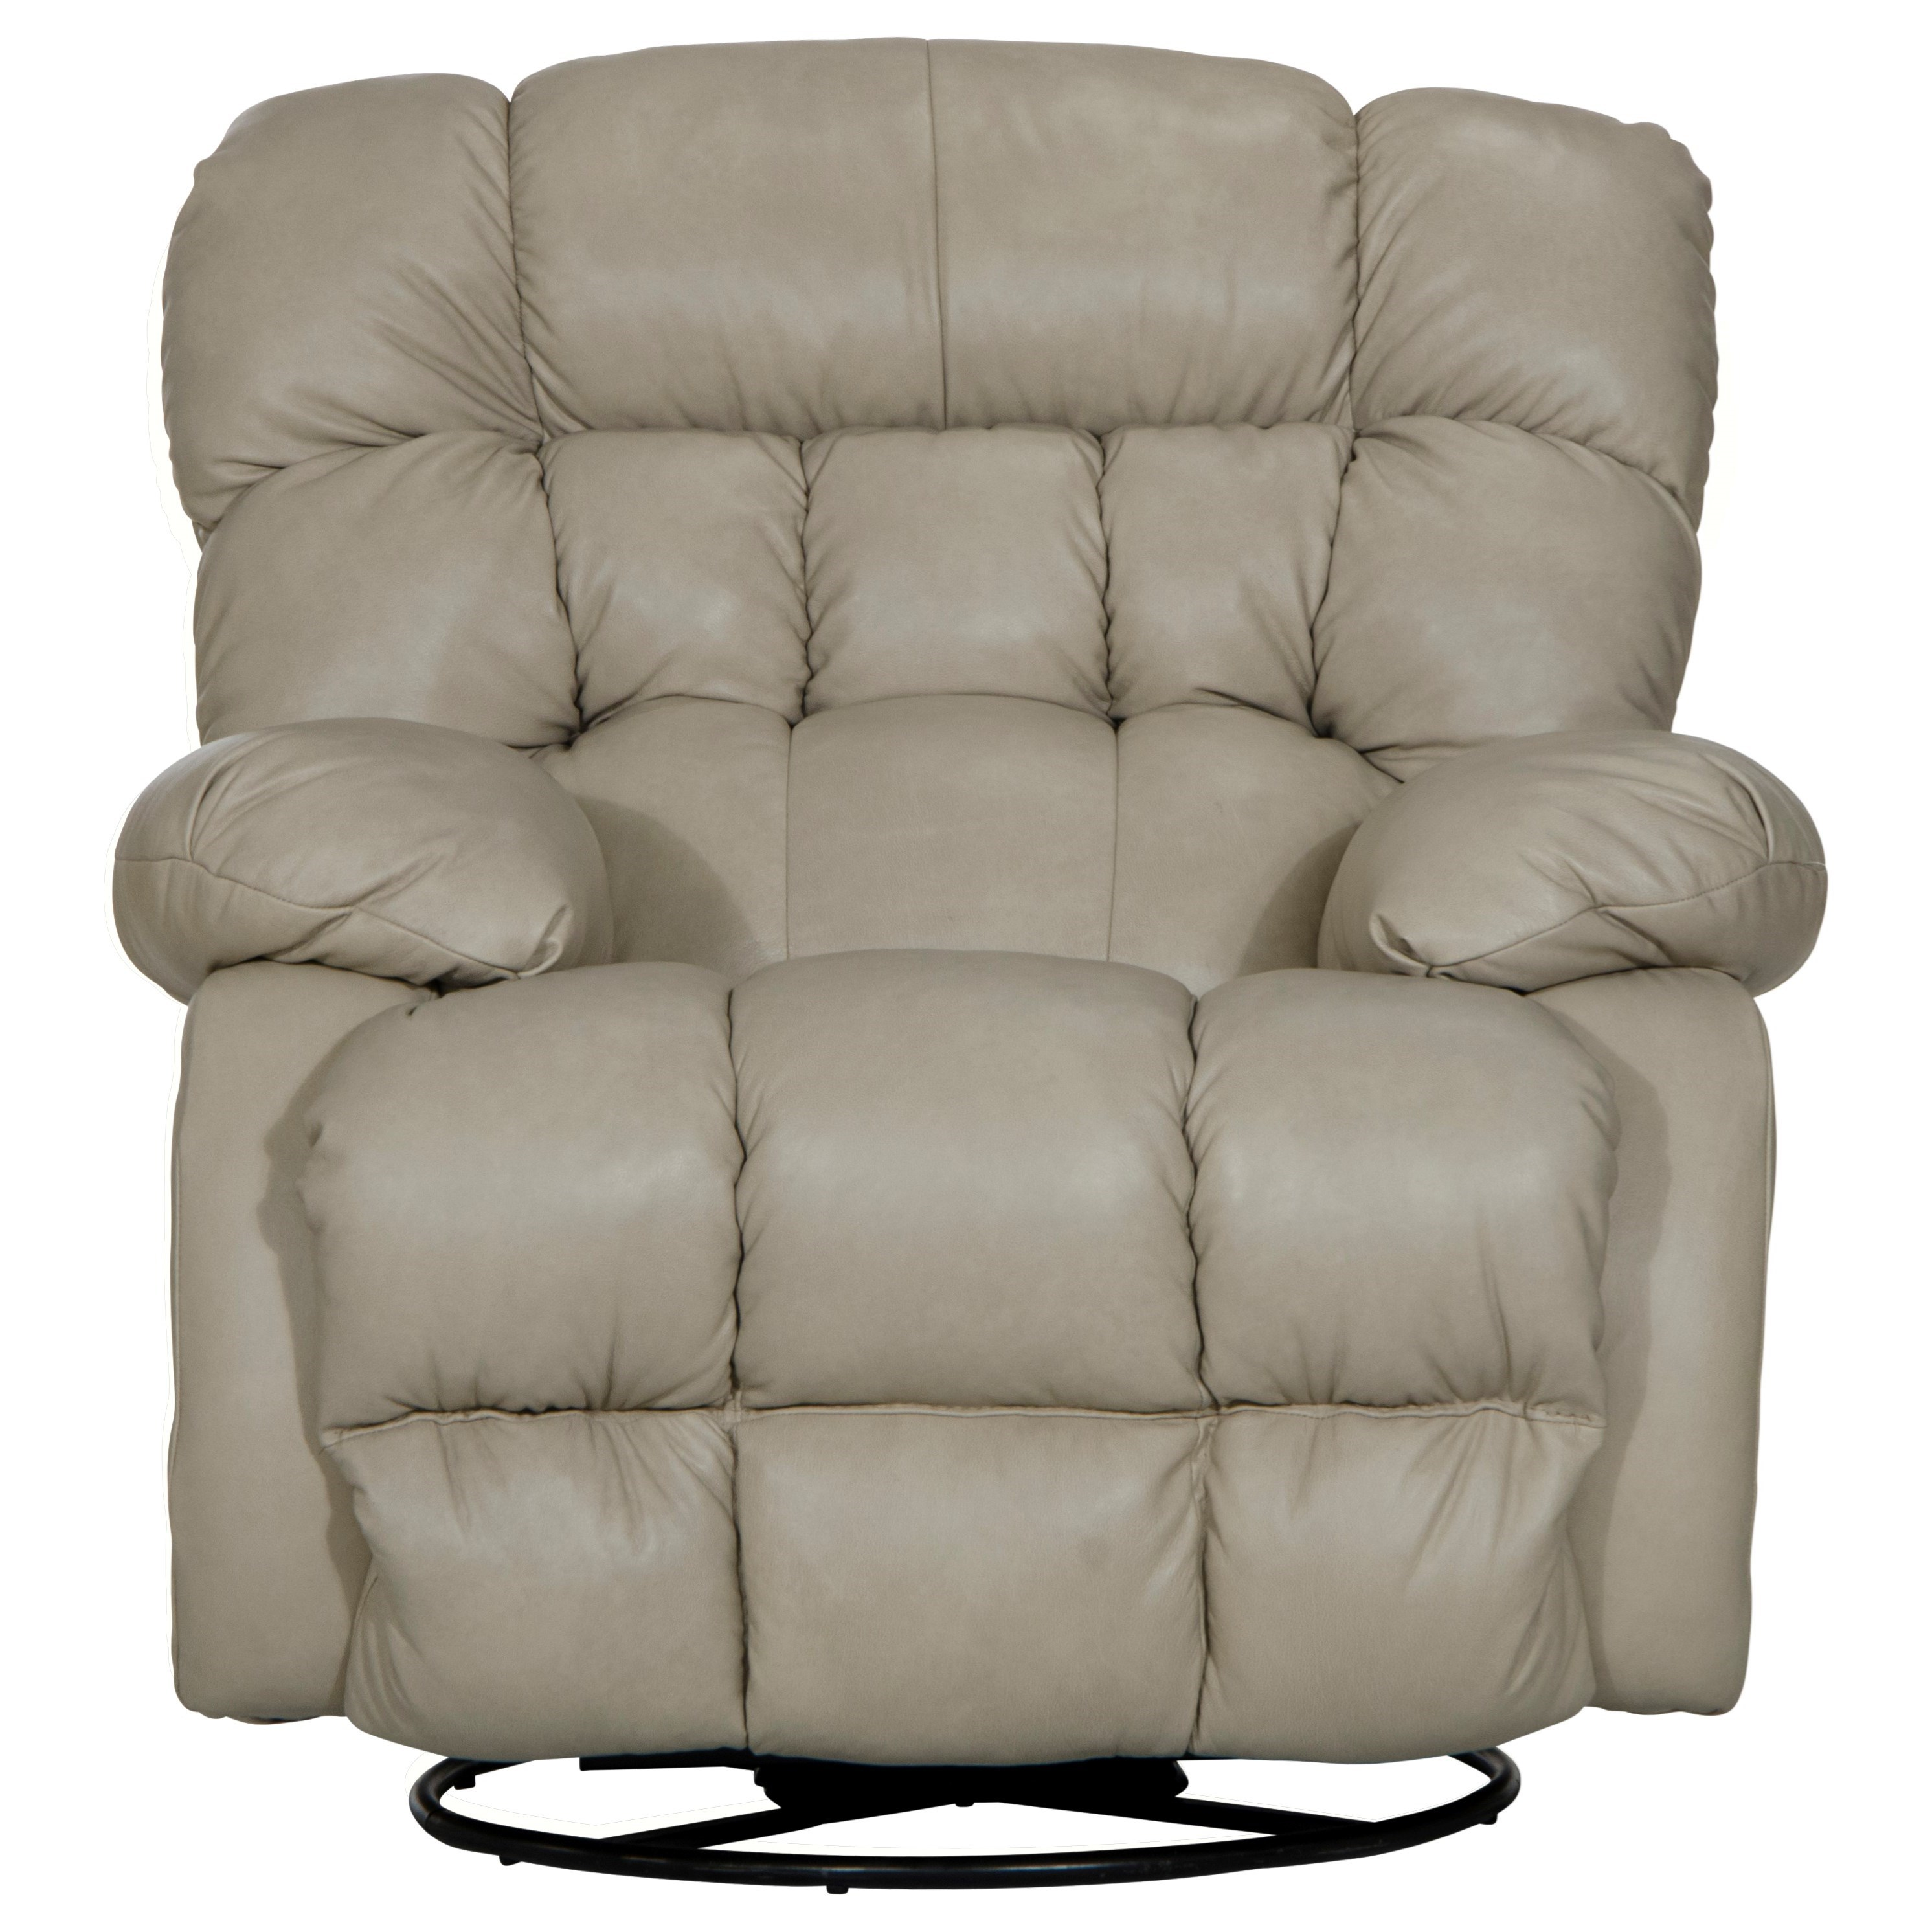 Pendleton Swivel Glider Recliner by Catnapper at Northeast Factory Direct